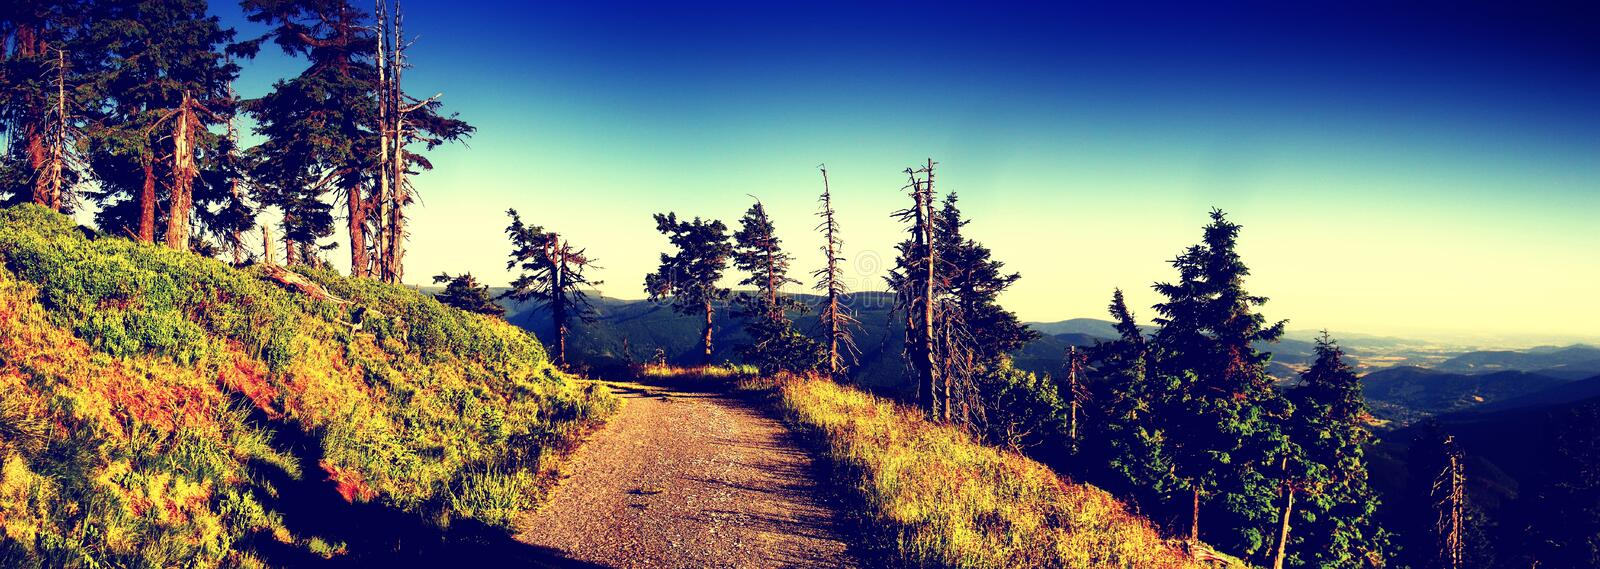 Scenic mountain landscape with gravel road royalty free stock images